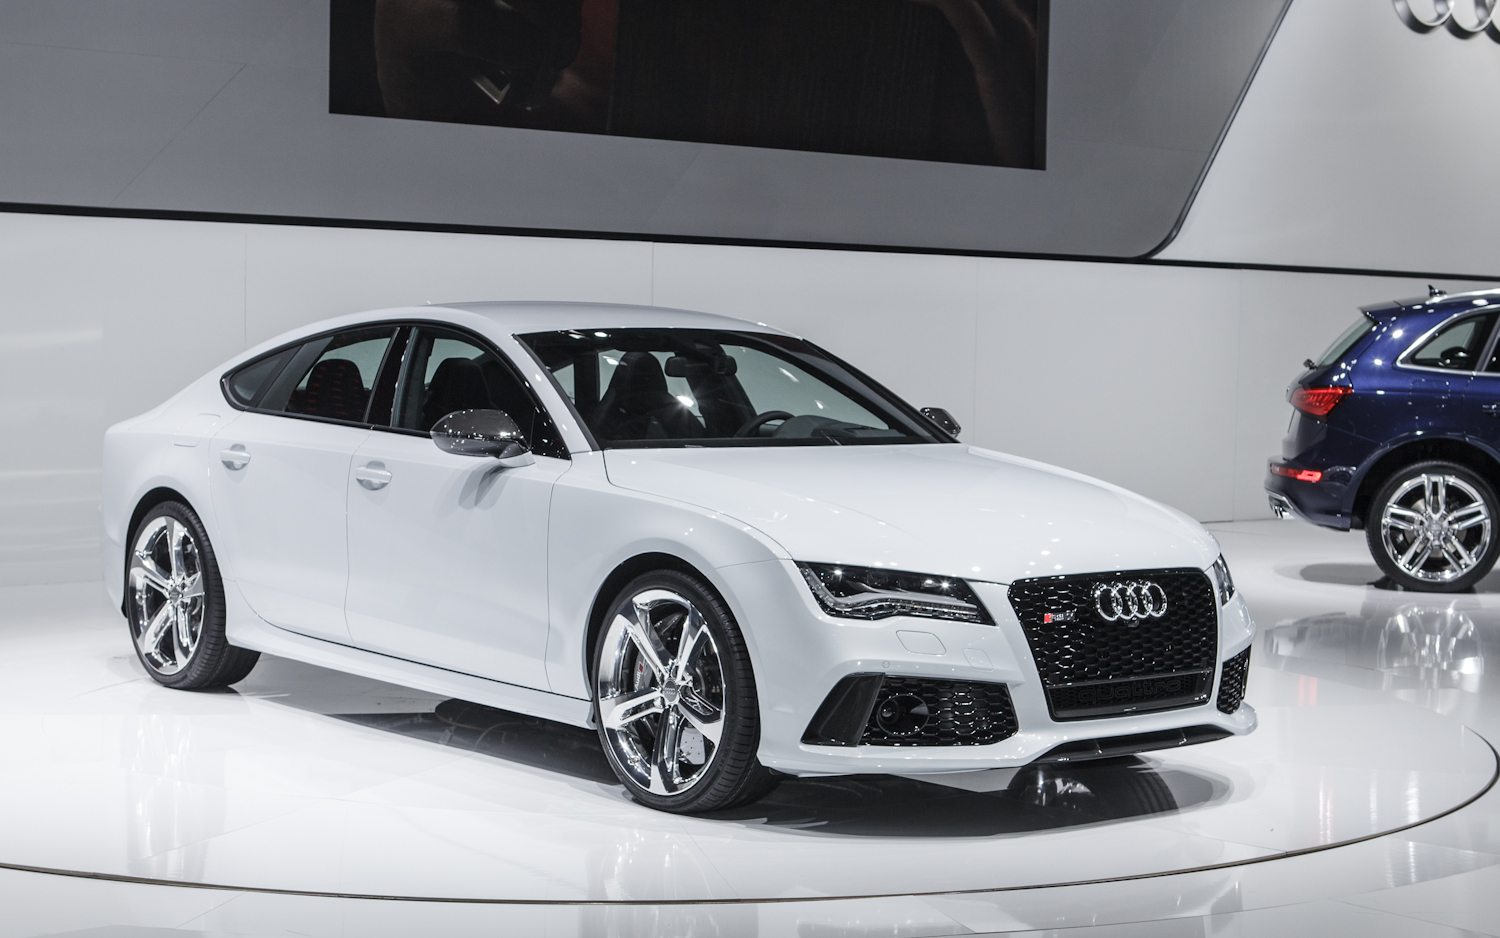 Audi Q7 - Created according to the Audi 2014 tendencies #1